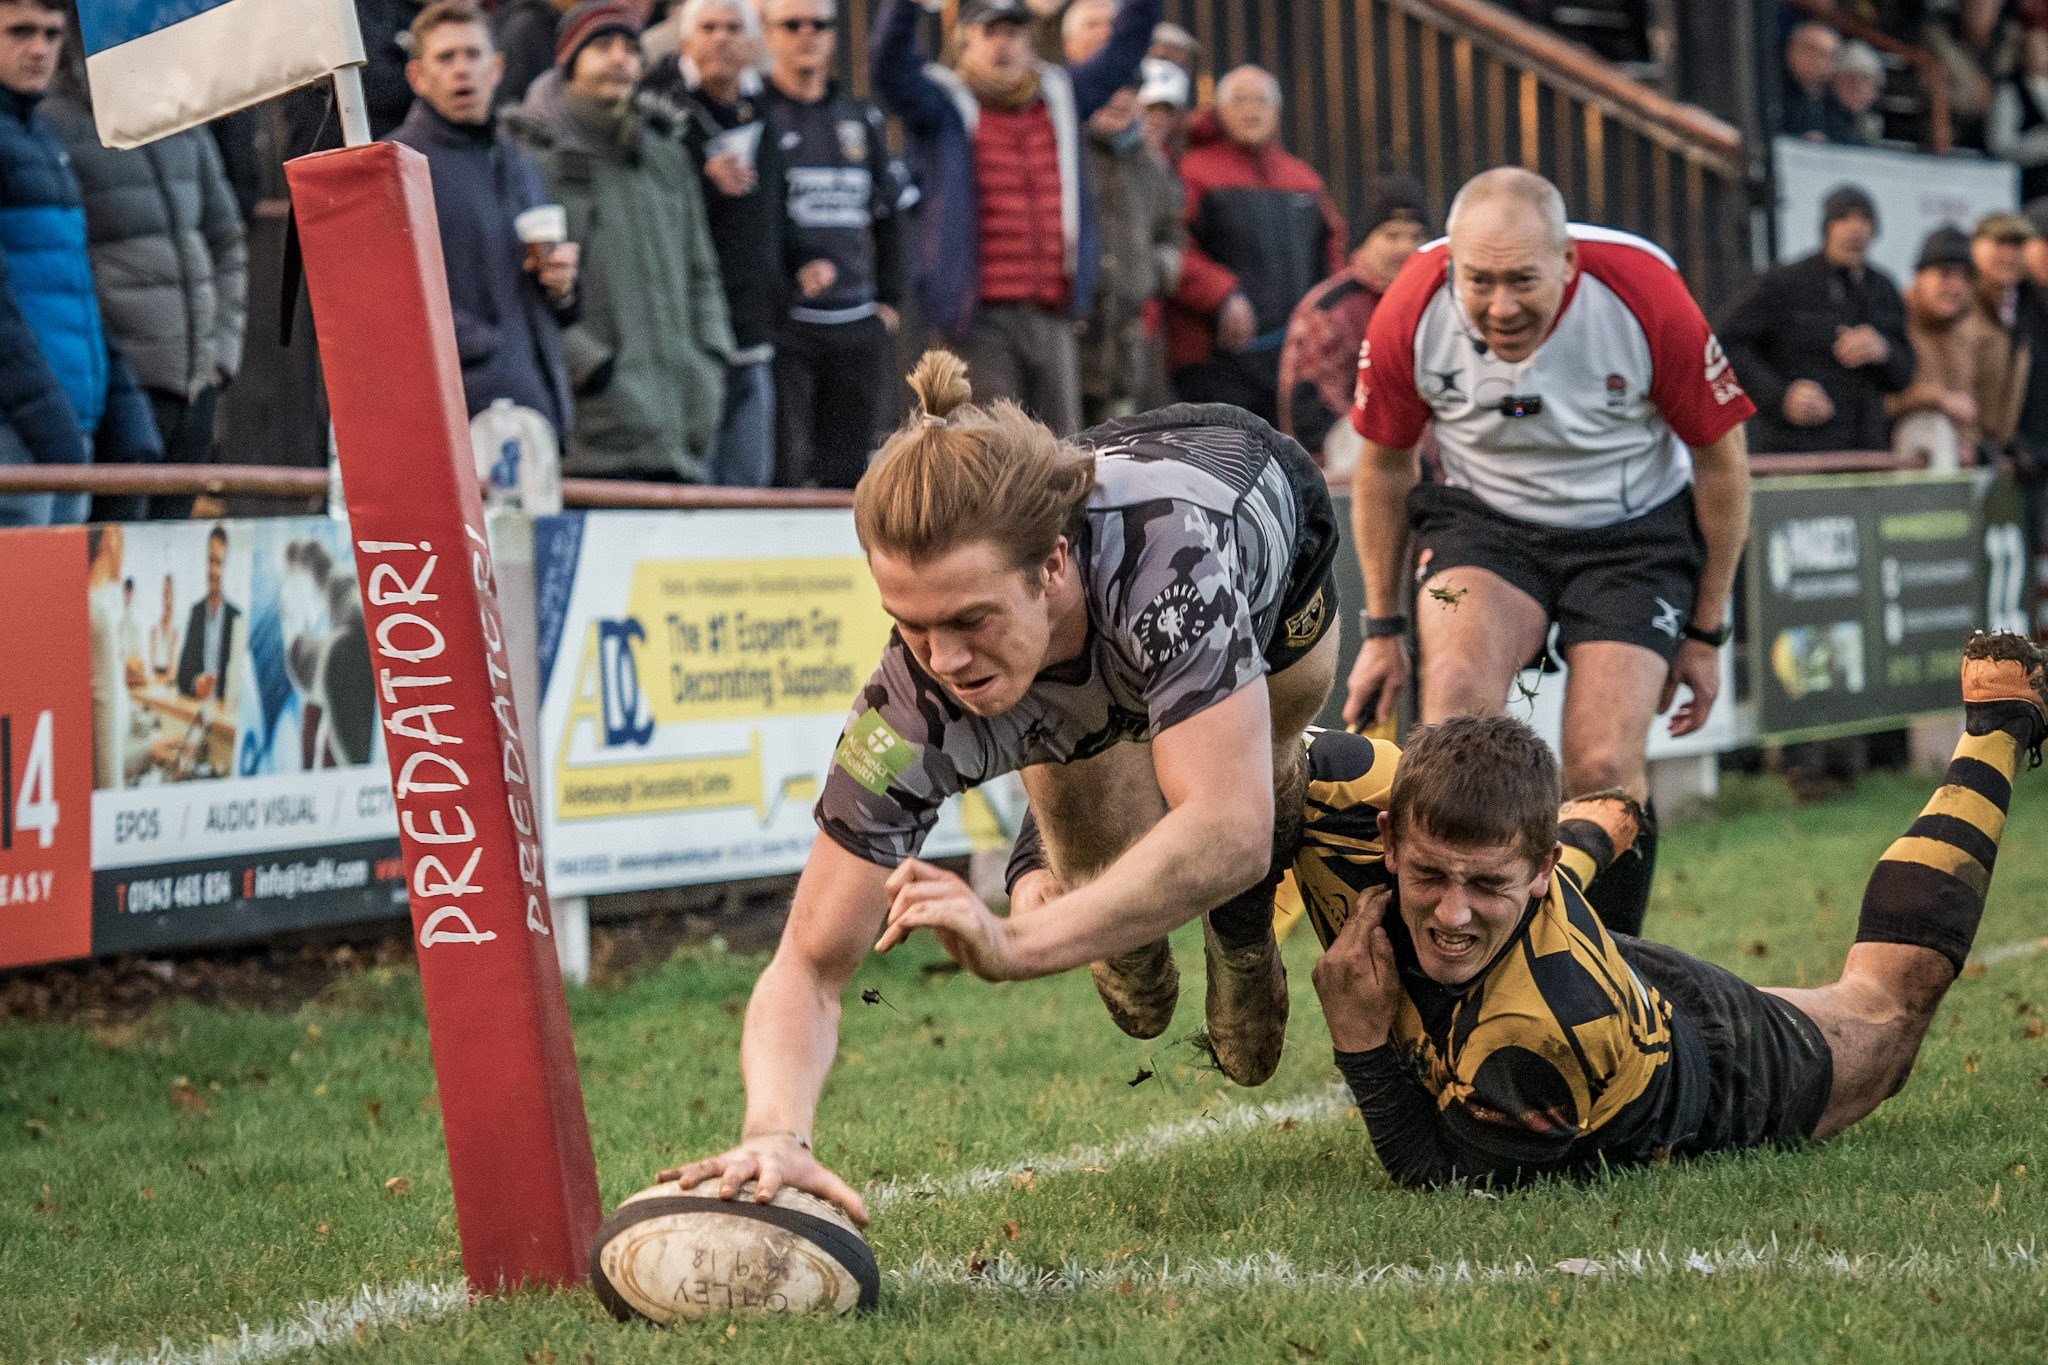 Ben Magee, shown here going over for a try against Hinckley, has been influential for Otley this season. Picture: John Ashton.